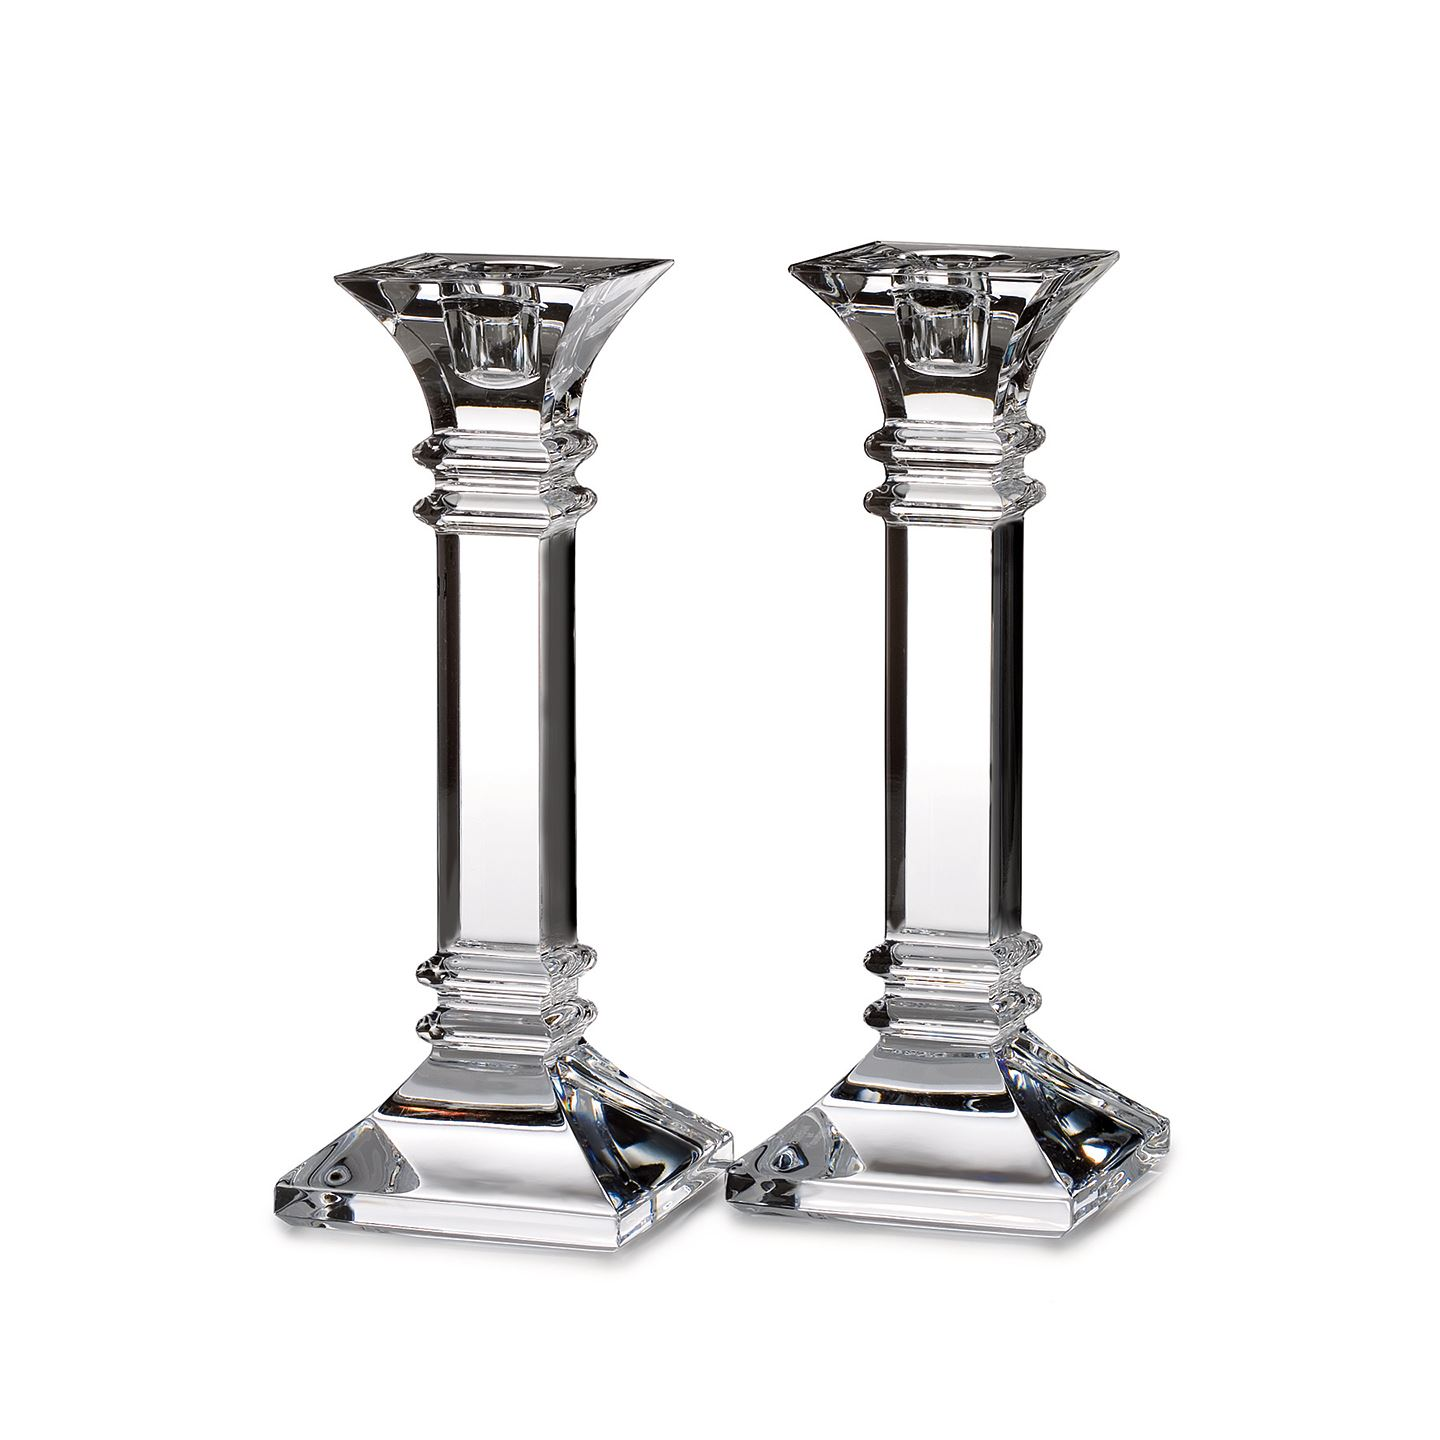 Marquis by Waterford Treviso 20cm Candlestick | Set of 2 | Lead Crystal